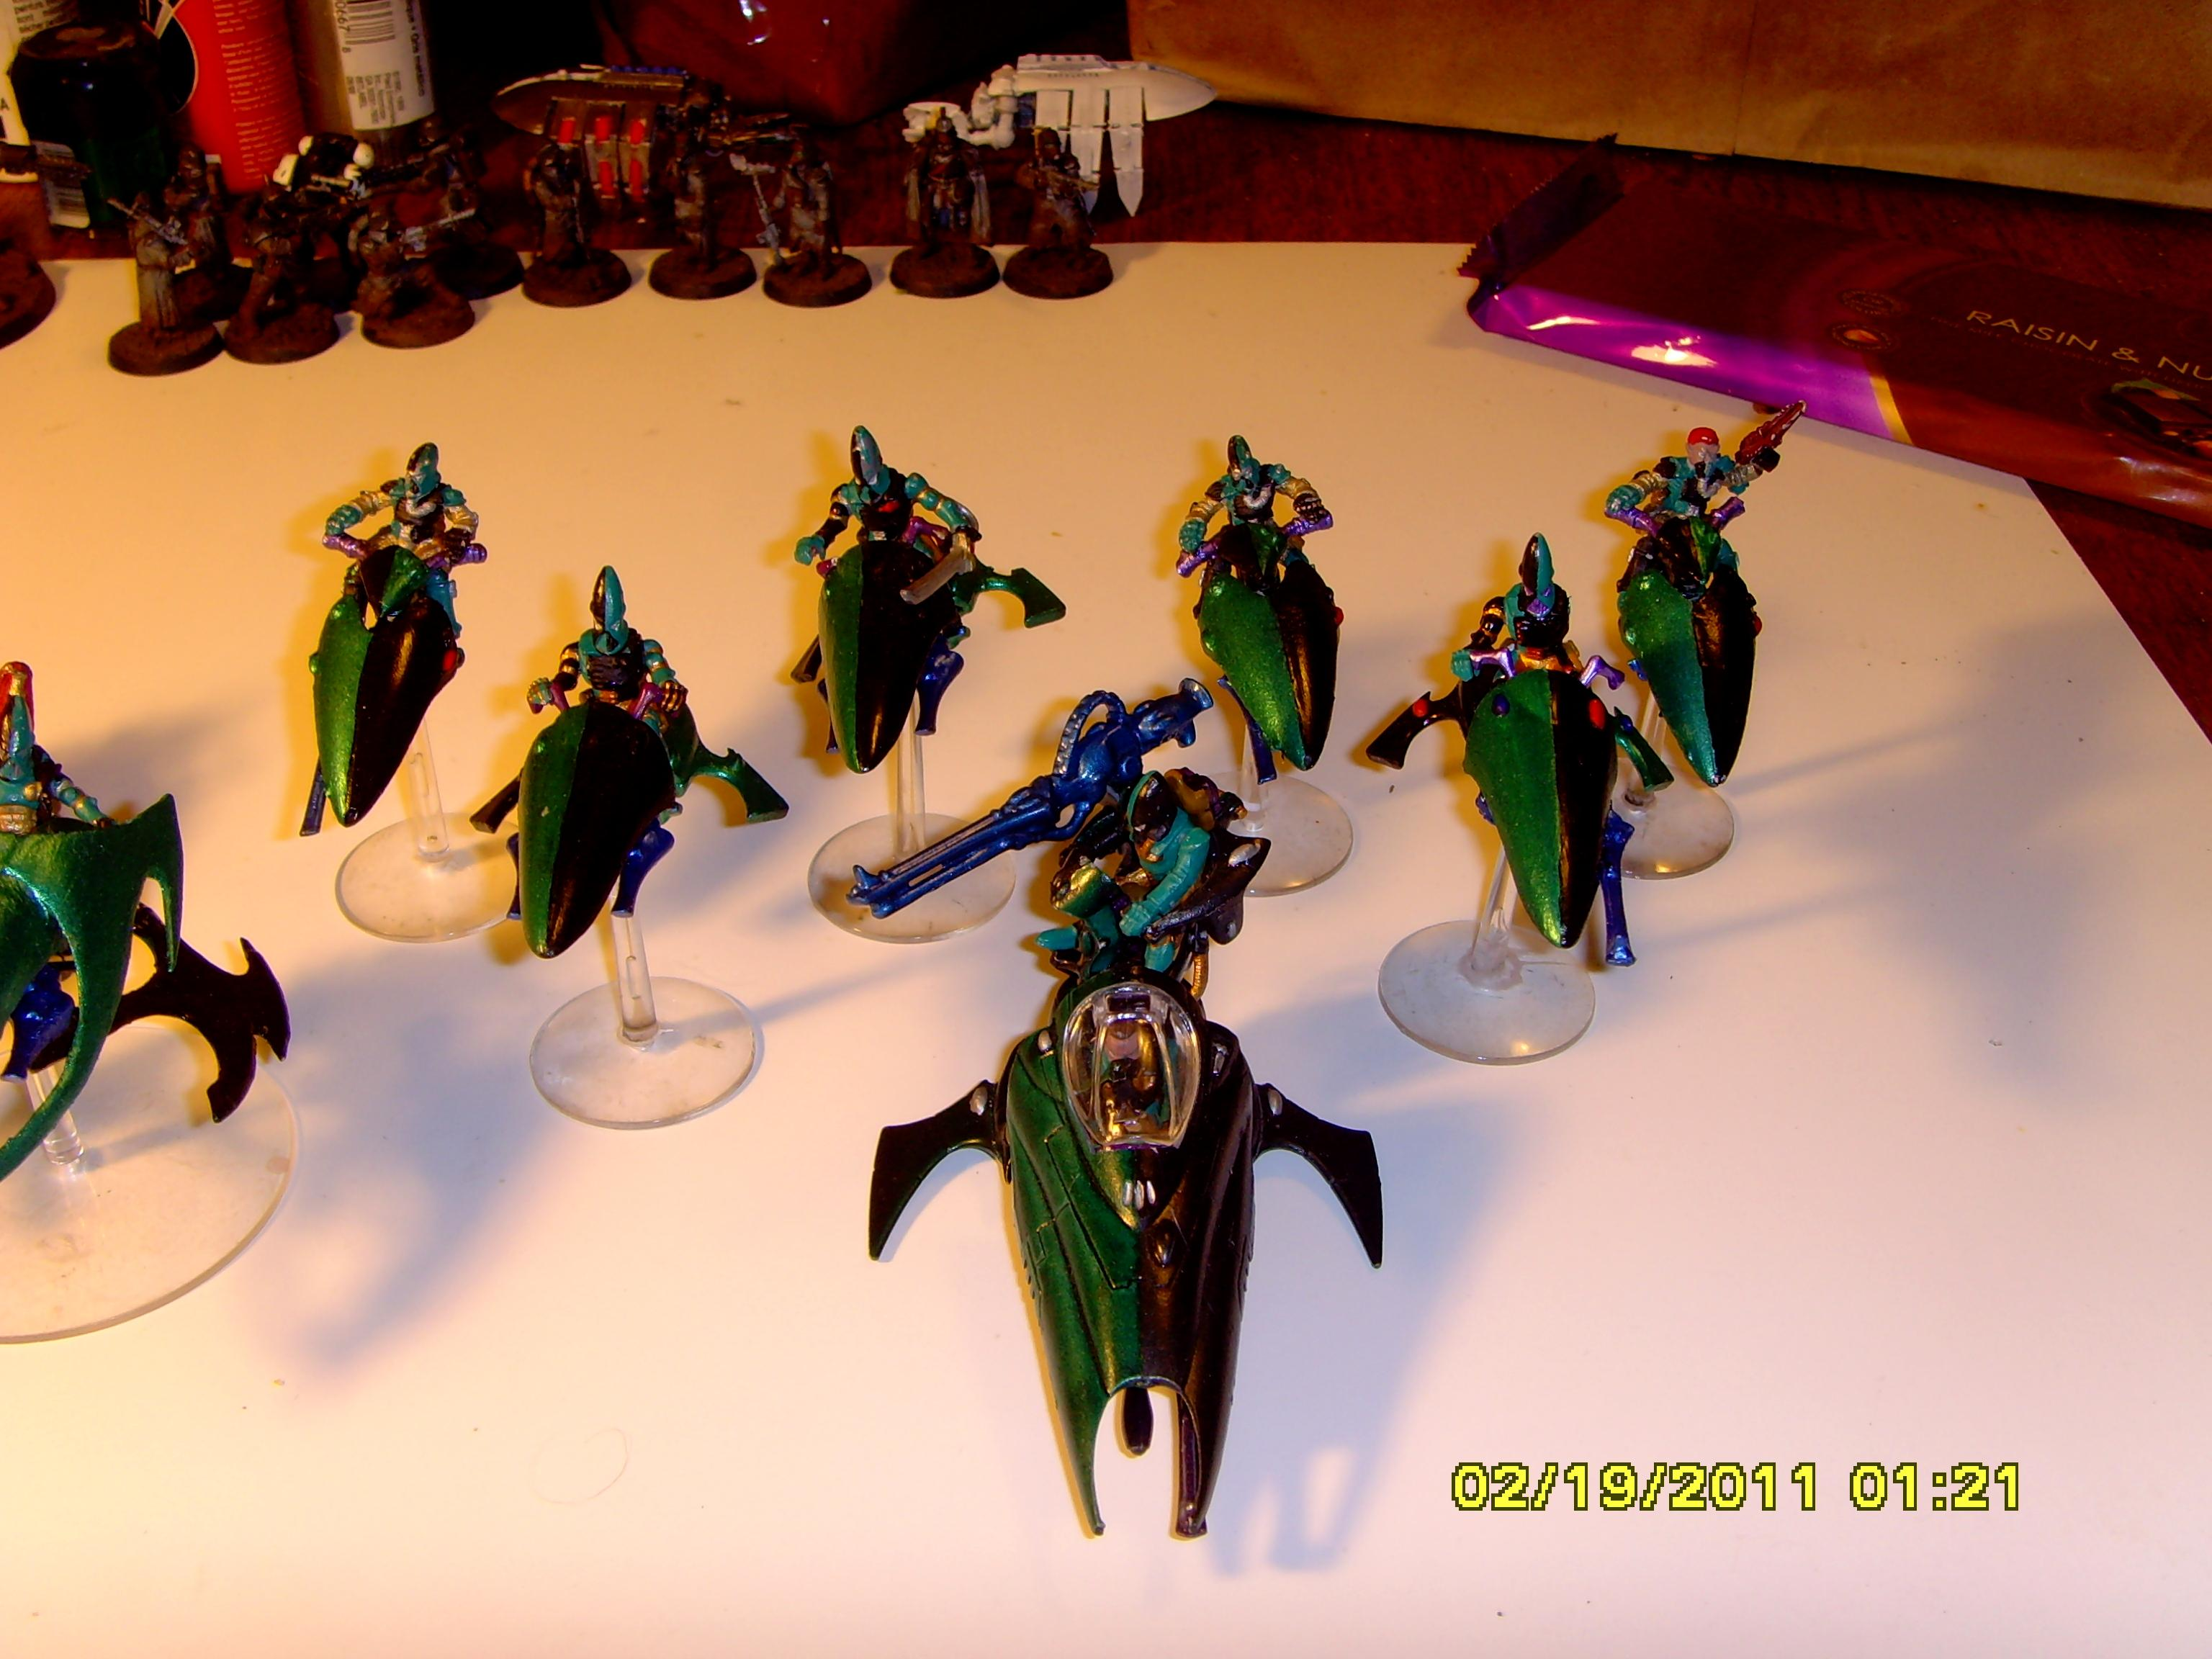 Apocalypse, Army Profile, Autarch, Banshees, Conversion, Craftworld, Dark Reapers, Eldar, Farseers. Guardians, Harlequins, Jetbike, Phoenix Lords, Rangers, Scorpion, Vehicle, Venom, Warhammer 40,000, Warlock, Work In Progress